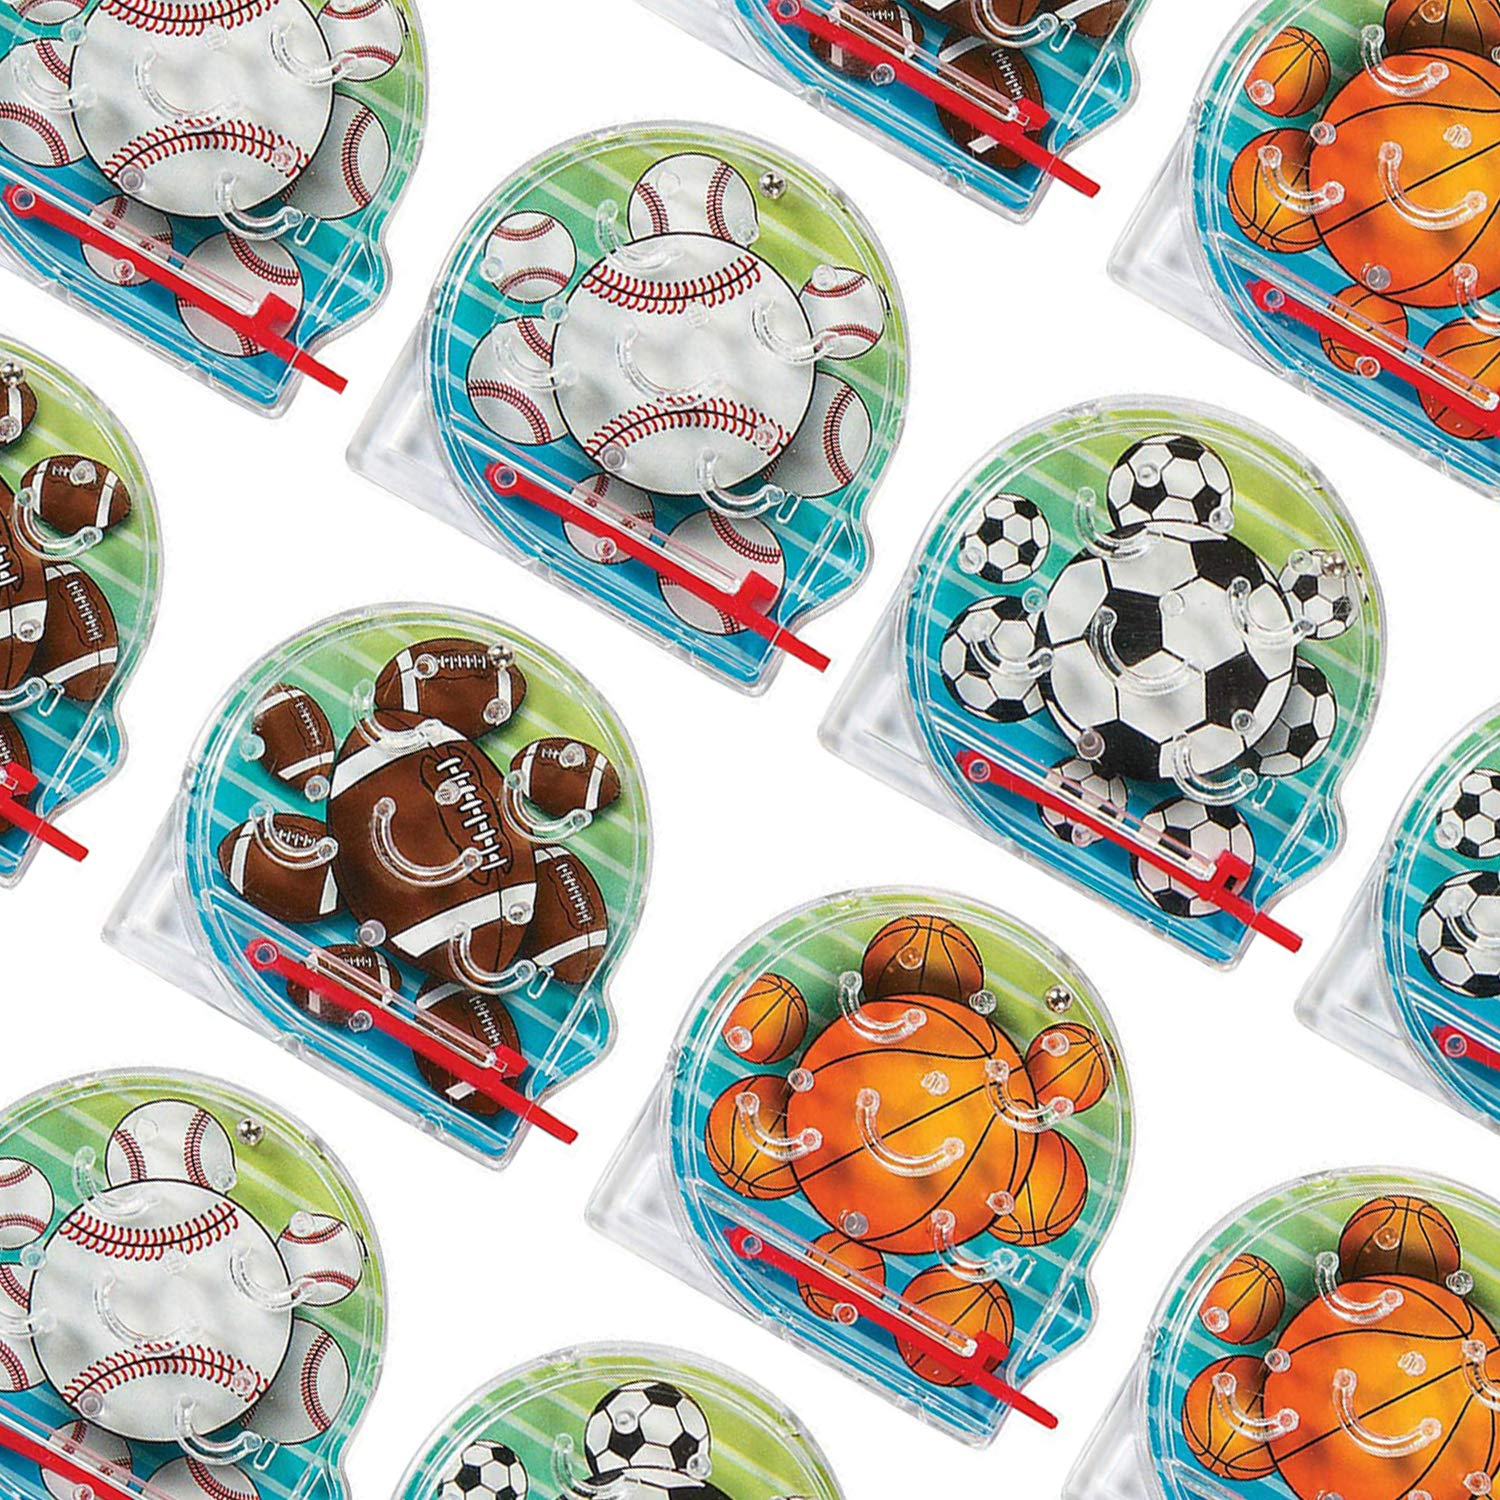 Fun Pack of 8 Assorted Colored Sports Balls Pictures Bag Stuffers Mini Pinball Bagatelle Game Toy Prize Kayco USA Kidsco Mini Sports Pinball Games 2 Inches for Kids Great Party Favors Gift